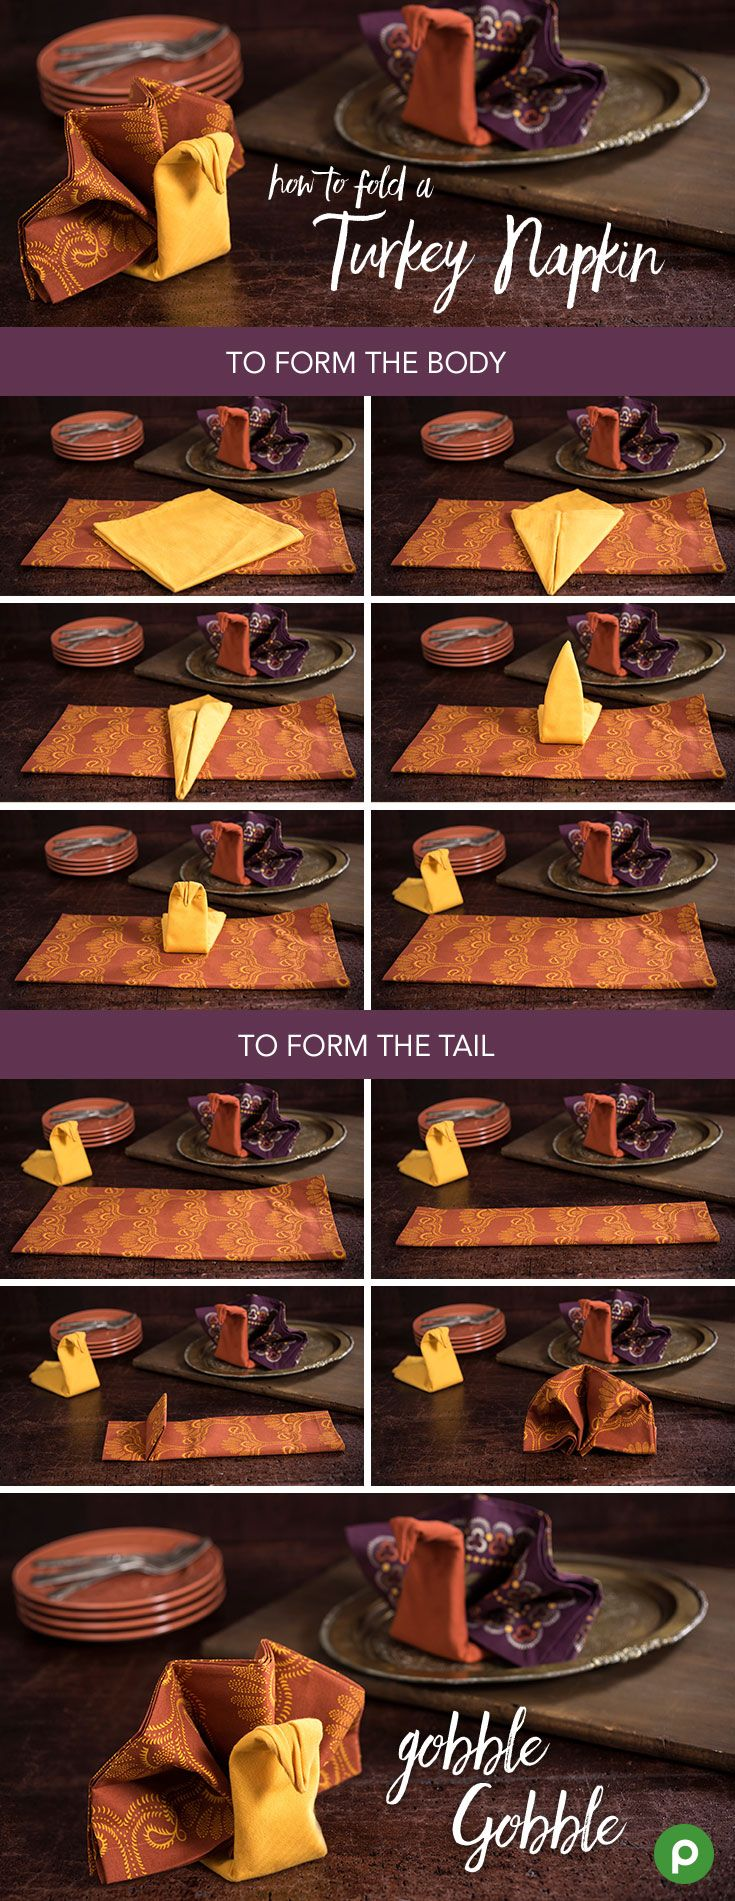 Here's a simple DIY guide to folding the perfect turkey napkins from Publix for your Thanksgiving holiday table. It's great for every table whether you're hosting a formal celebration or keeping it casual.